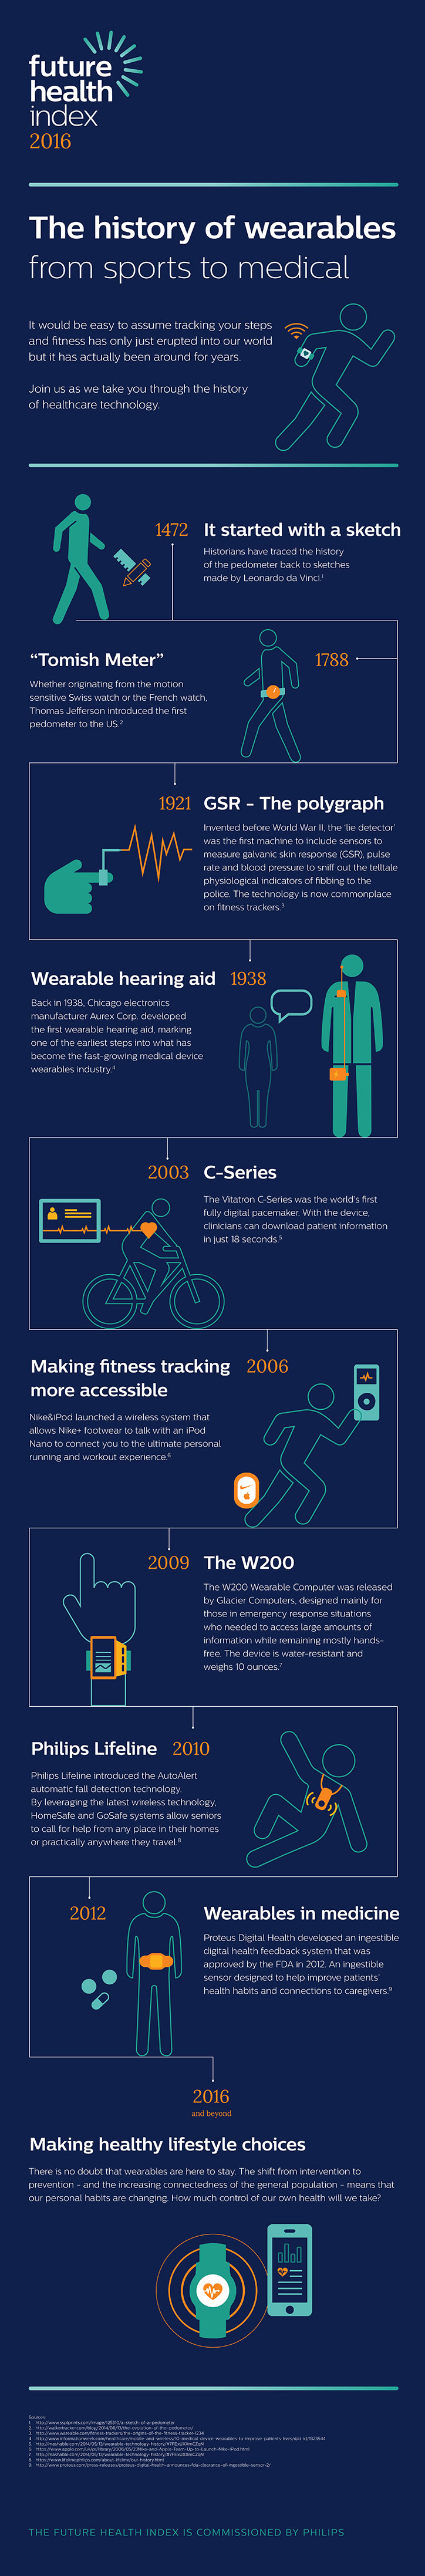 infographic history of wearables